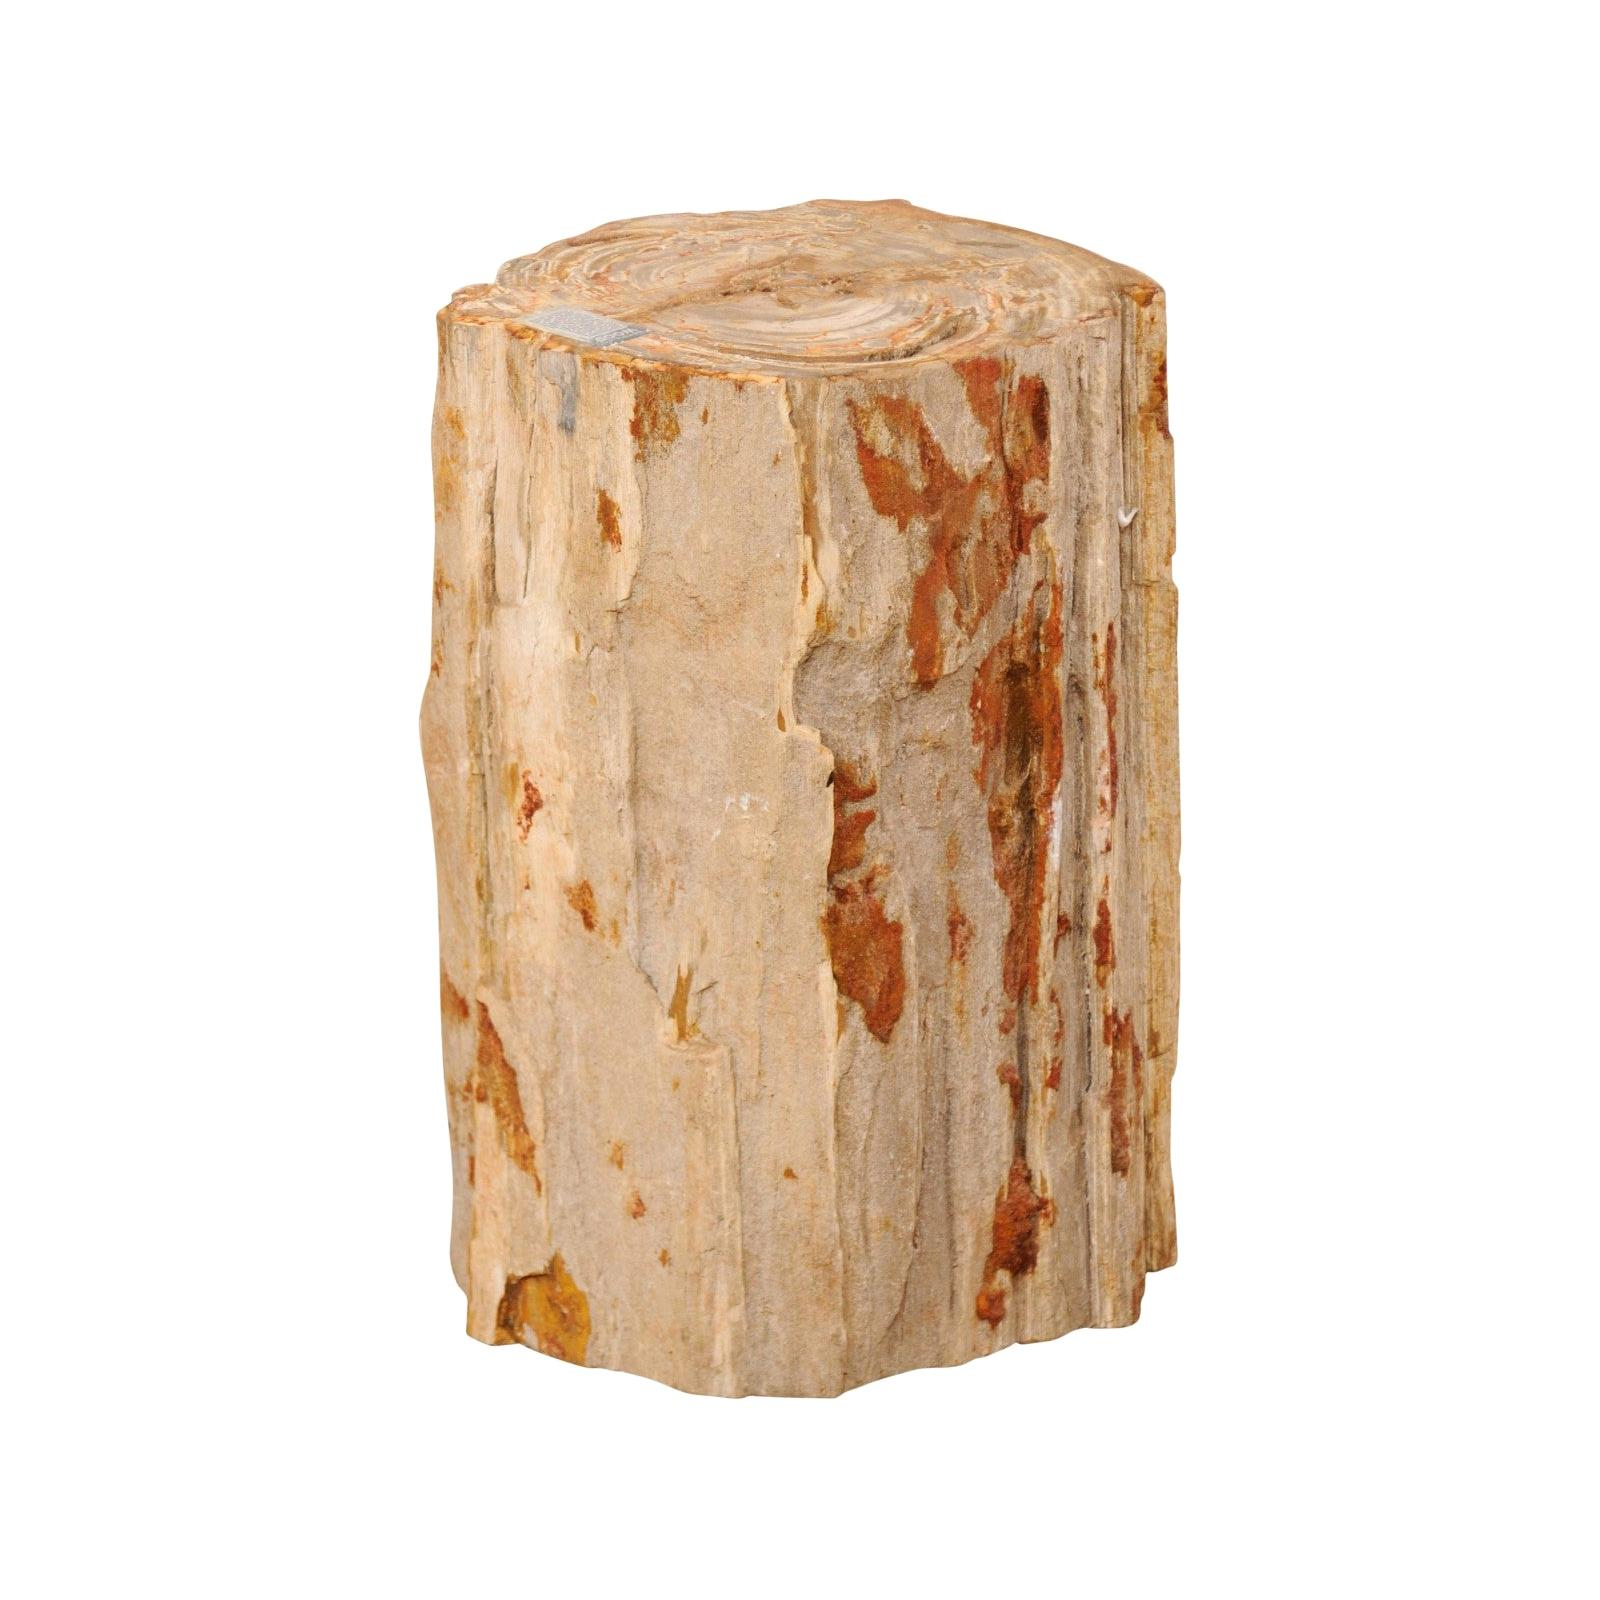 Live-Edge Petrified Wood Stool or Small Drinks Table